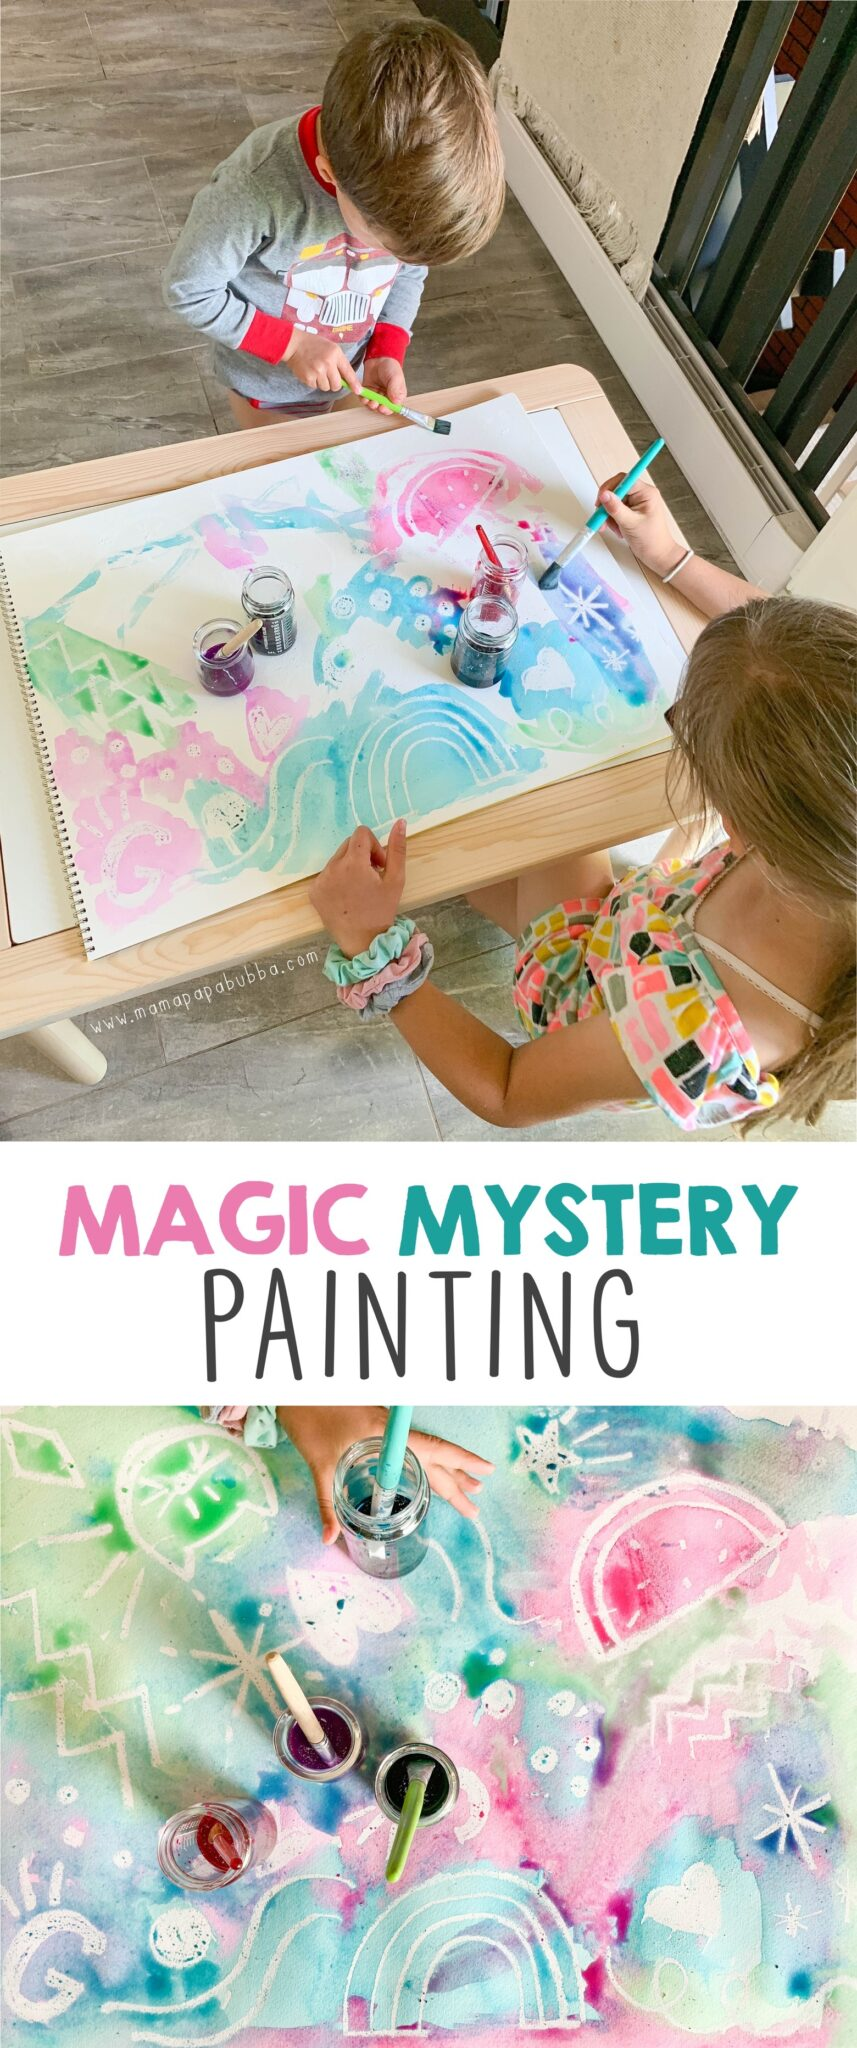 Magic Mystery Painting Activity | Mama Papa Bubba